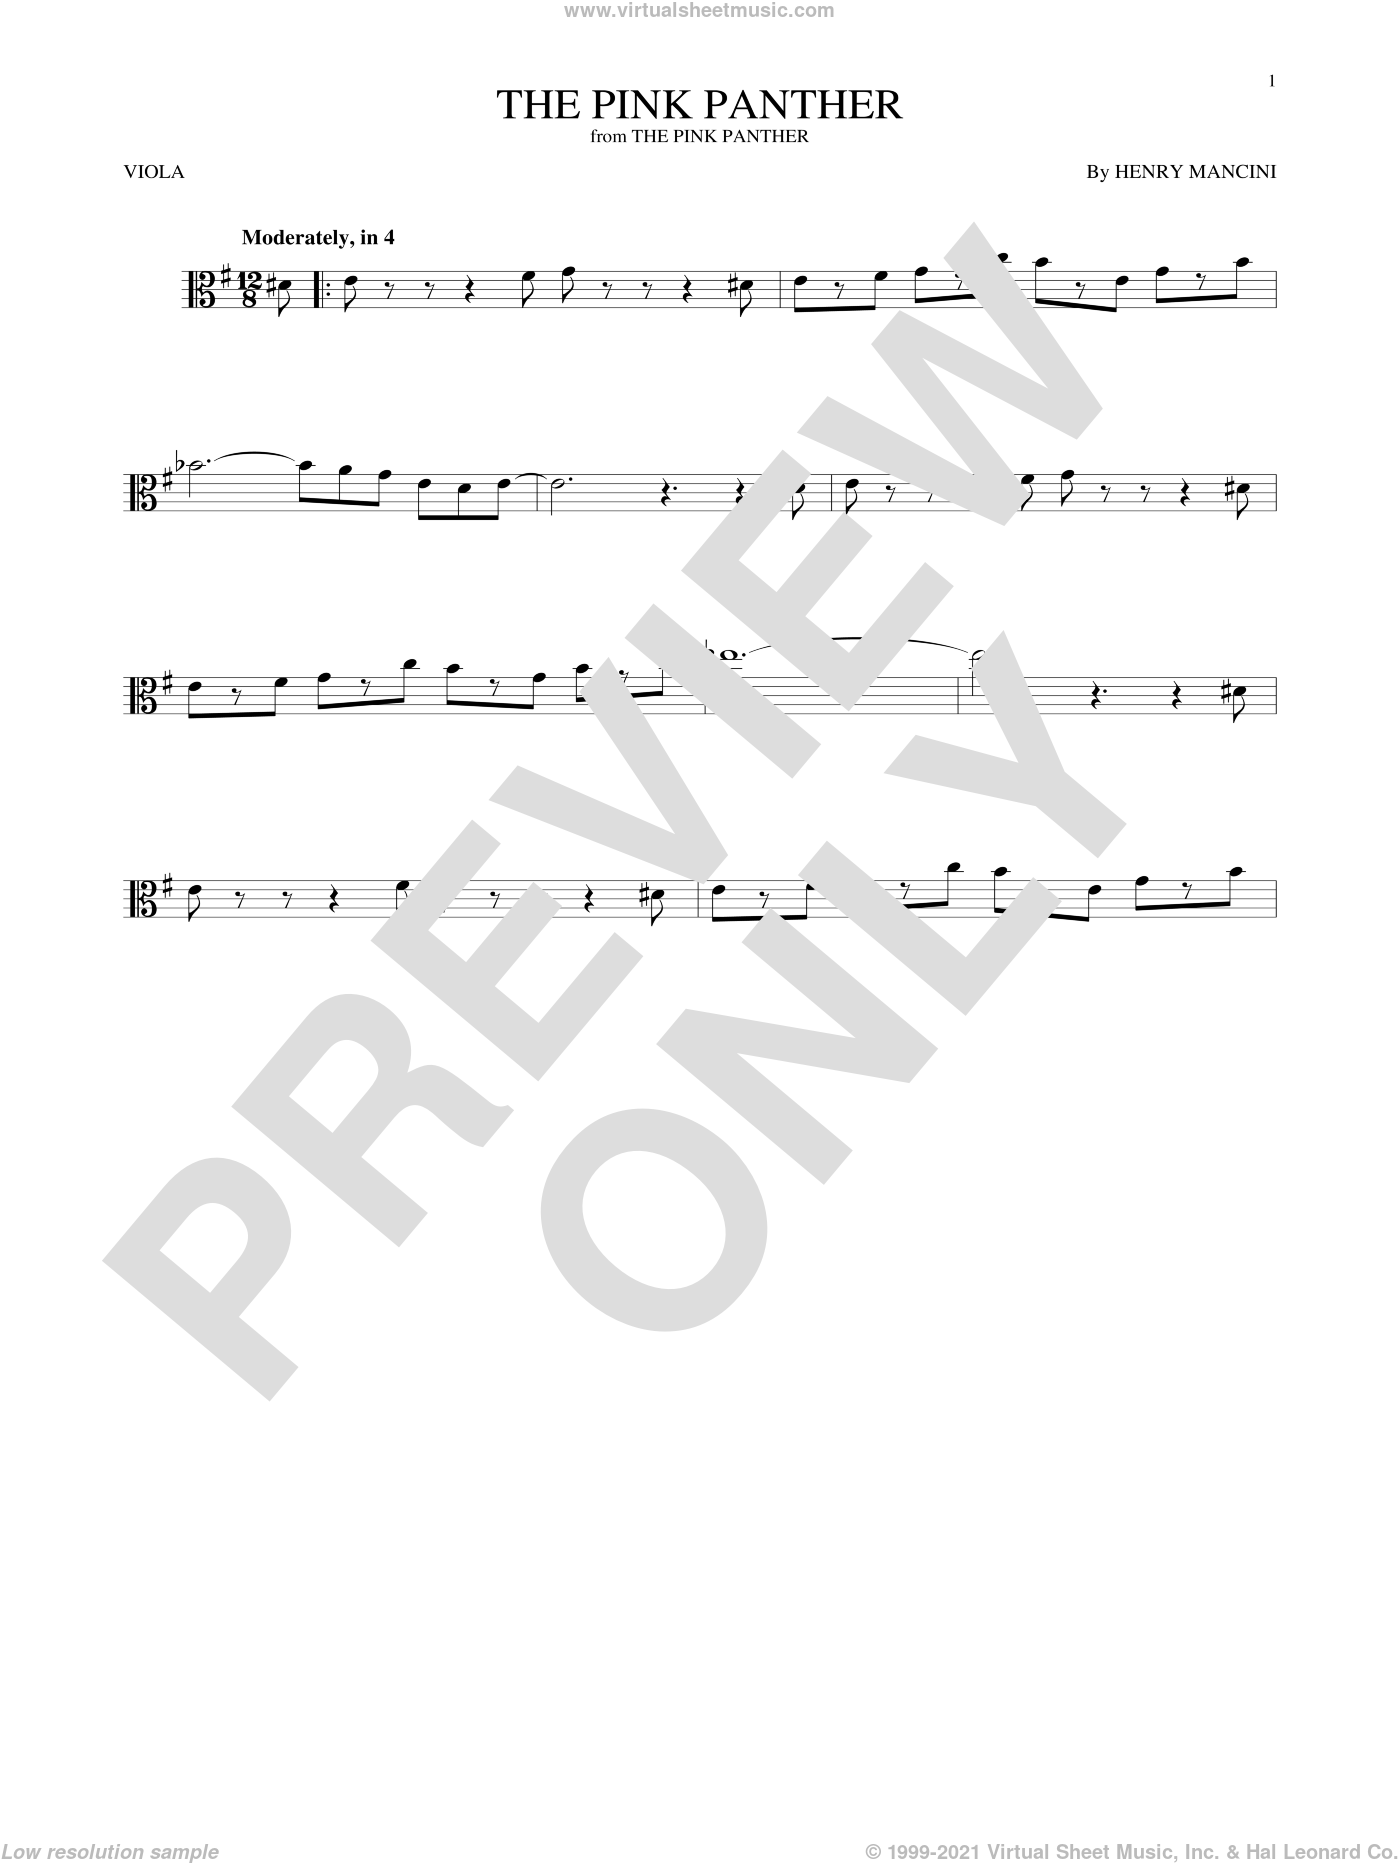 The Pink Panther sheet music for viola solo by Henry Mancini, intermediate skill level